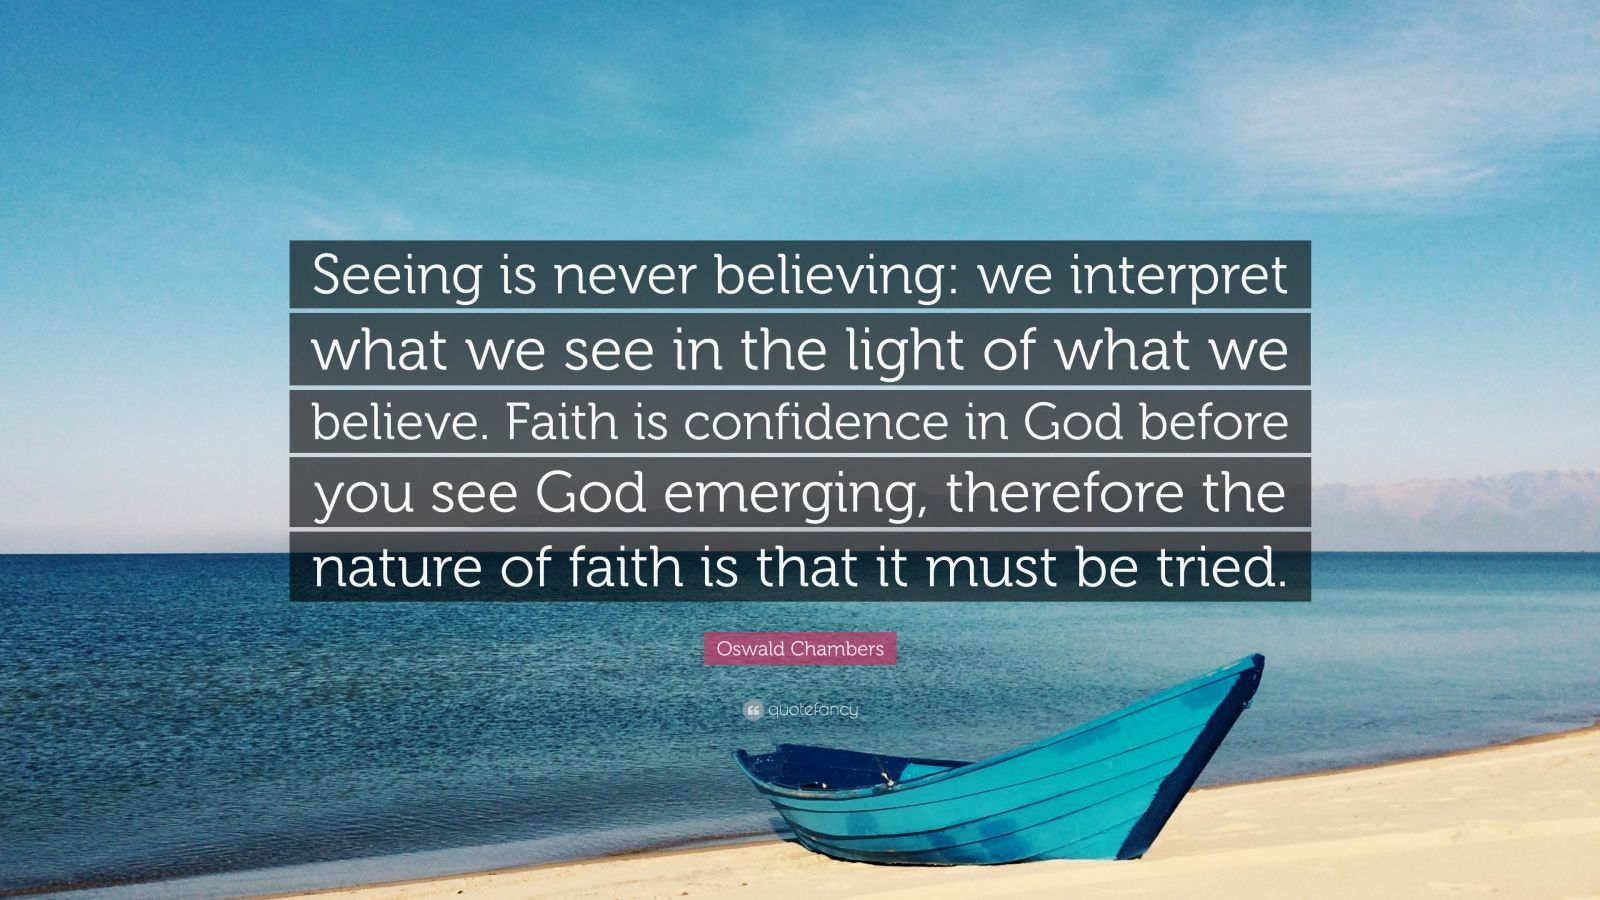 """Oswald Chambers Quote: """"Seeing is never believing: we interpret what we see in the light of what we believe. Faith is confidence in God before you see God emerging, therefore the nature of faith is that it must be tried."""""""